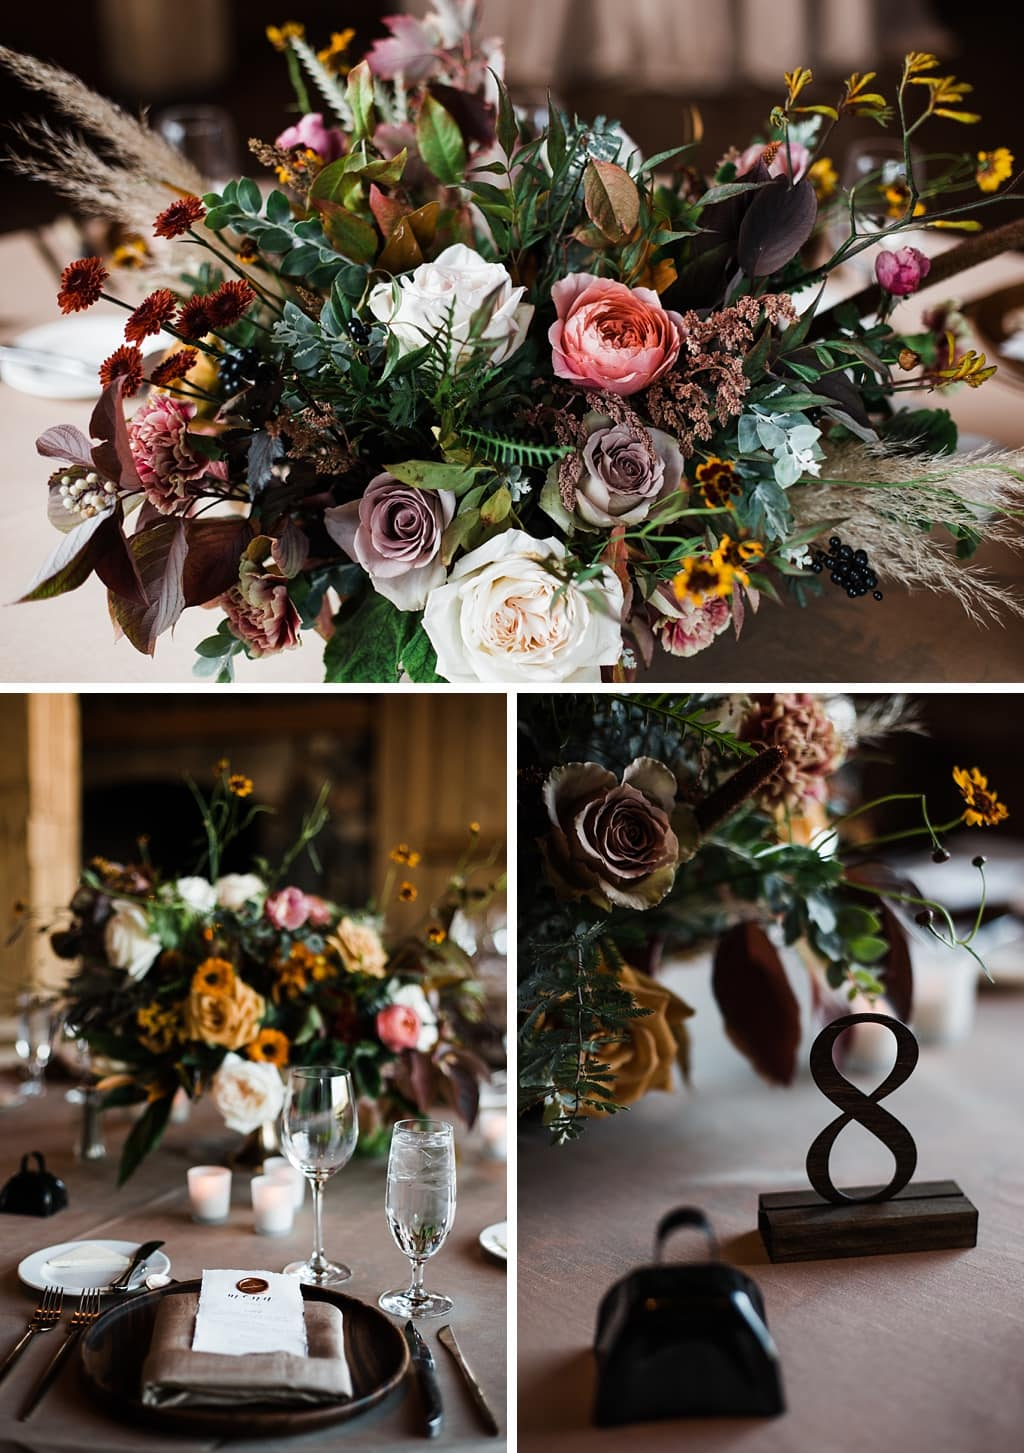 Centerpieces floral arrangements by Yonder House floral and decor Colorado wedding photography at Devil's Thumb Ranch winter wedding